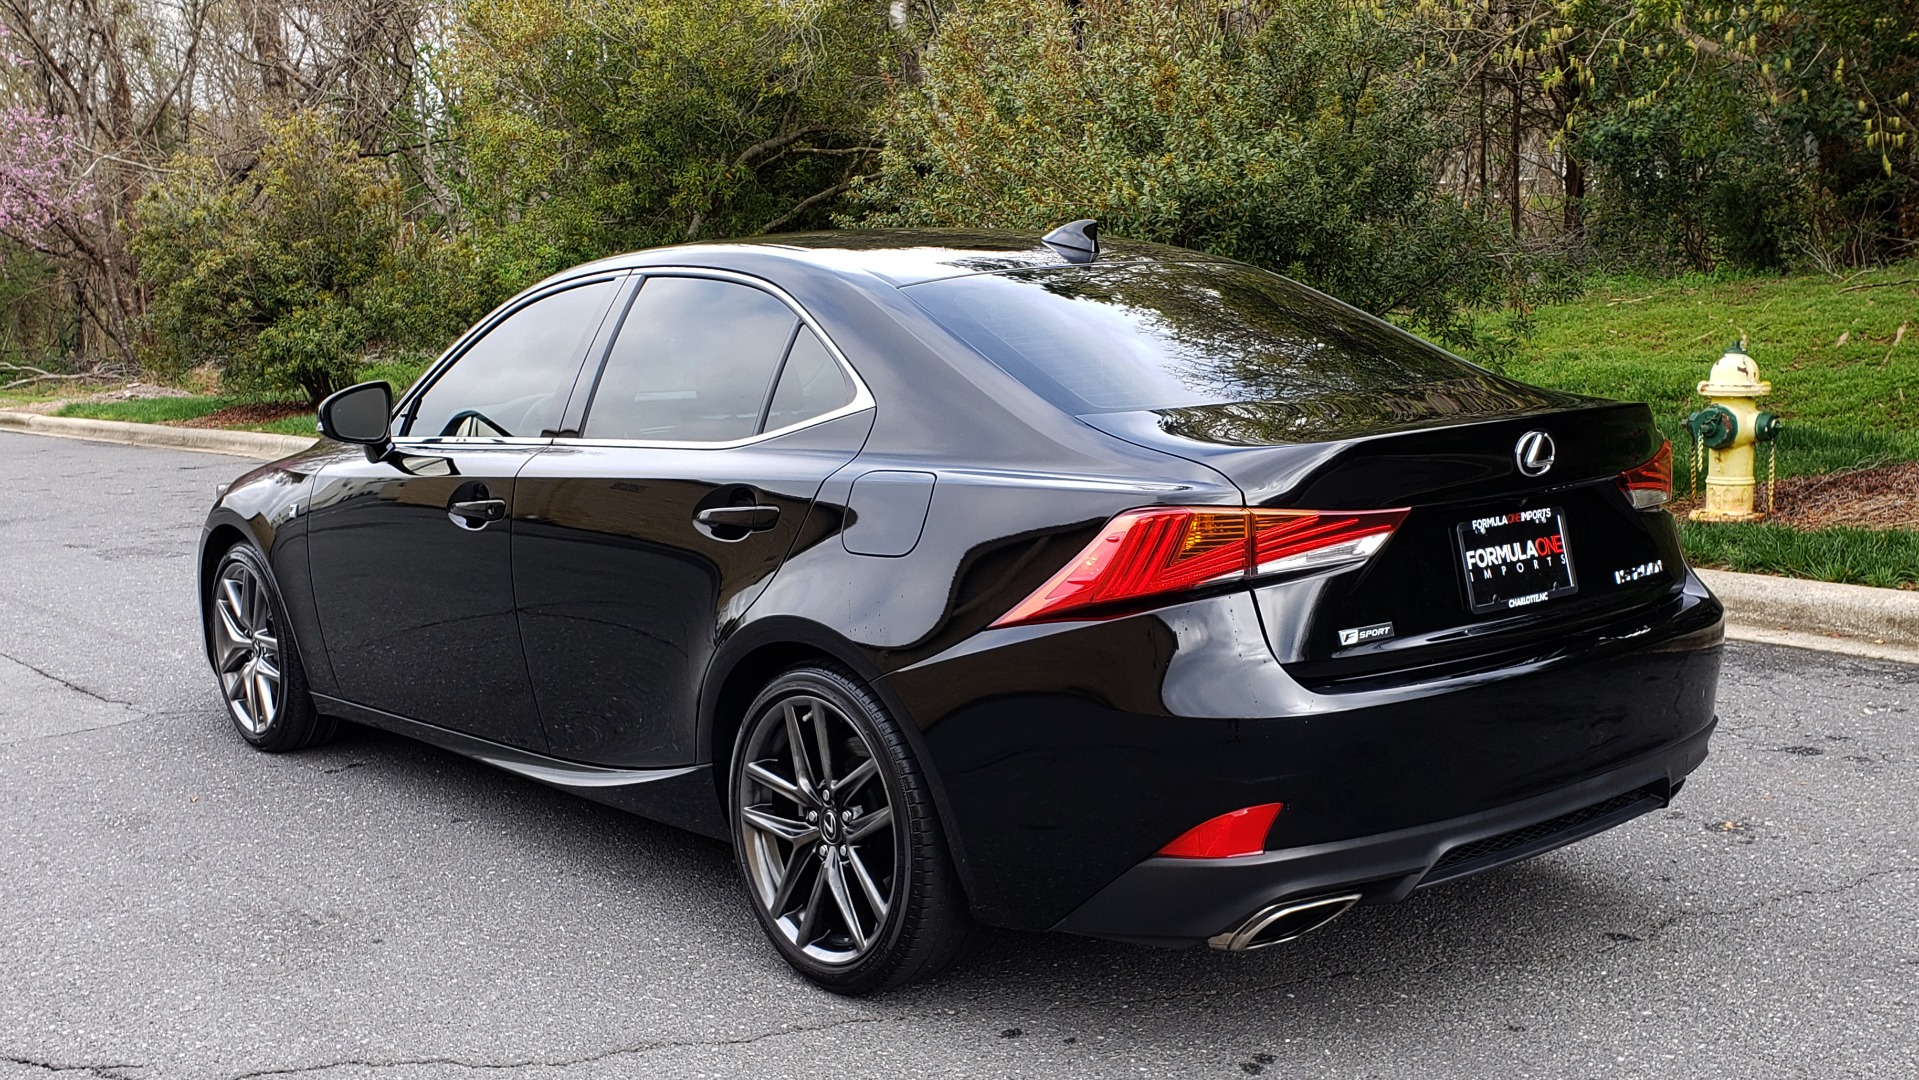 Used 2017 Lexus IS 200T F-SPORT / SUNROOF / REARVIEW / VENT SEATS for sale Sold at Formula Imports in Charlotte NC 28227 3